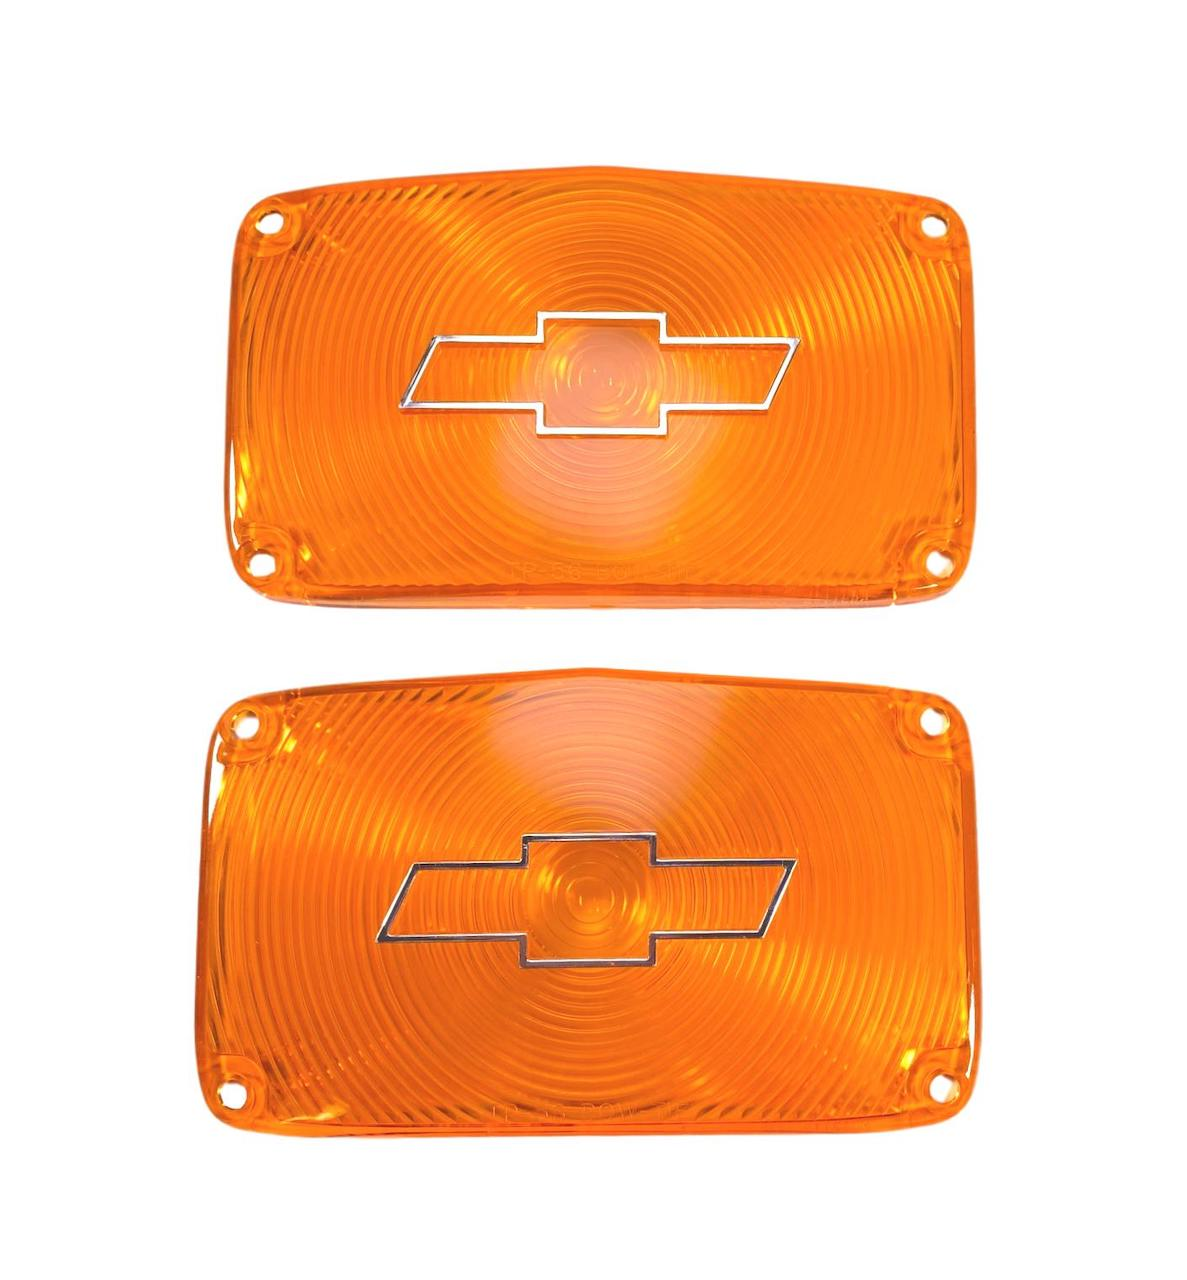 1956 Chevy Amber Parklight Lenses with Bowtie and Chrome Trim